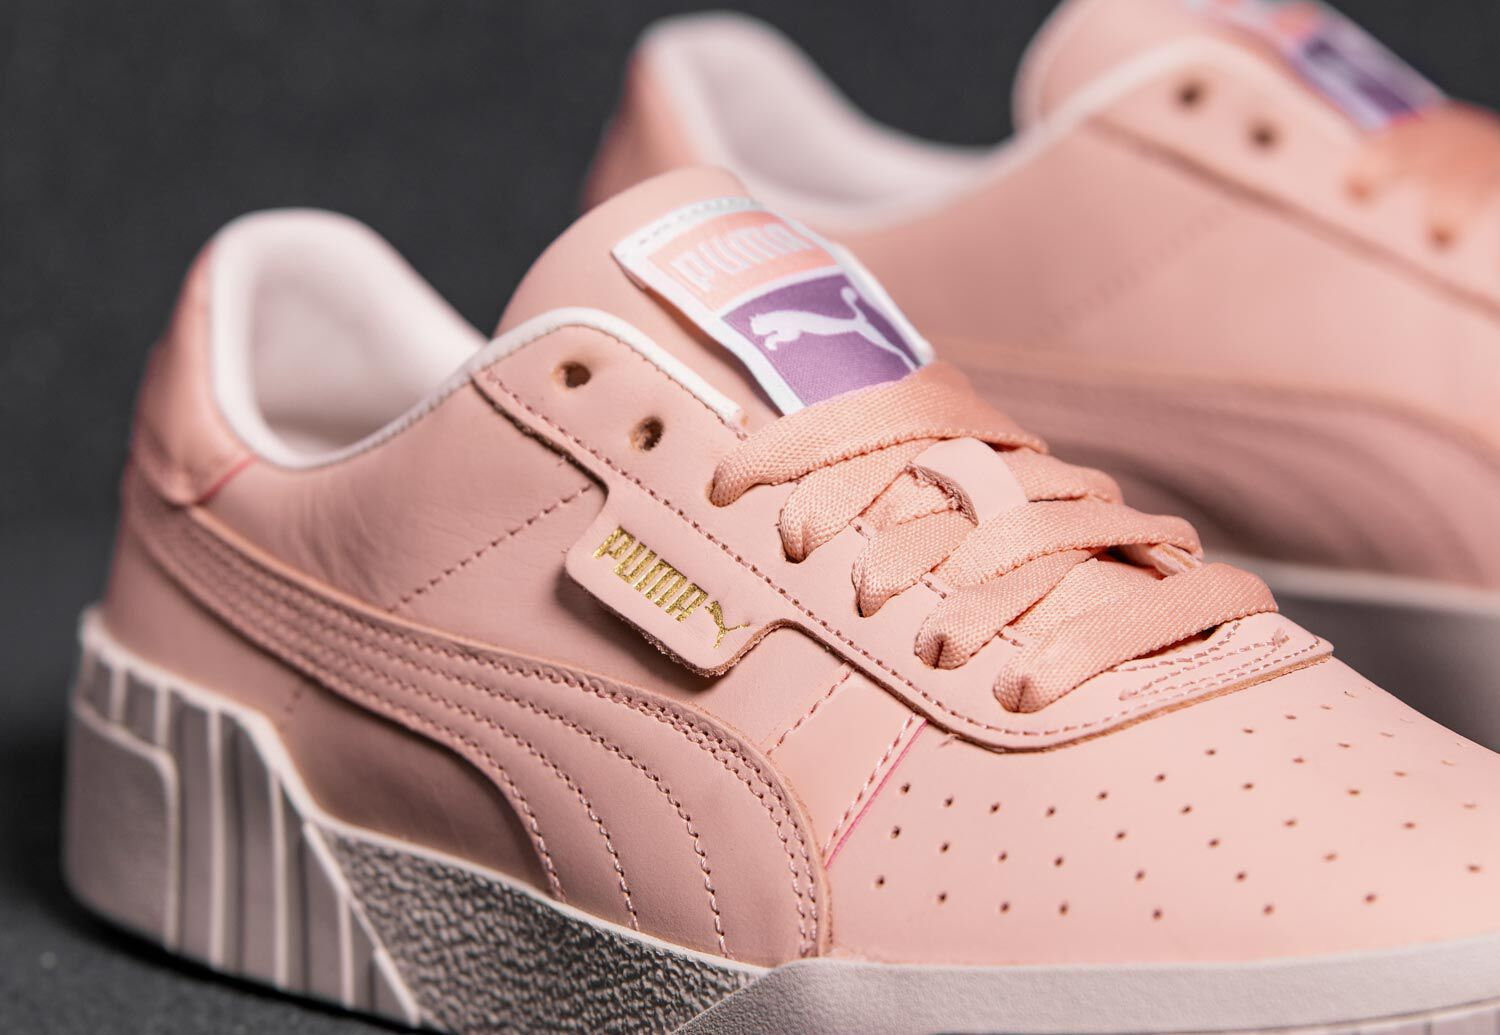 Cali Nubuck W - Sneakers Low - Women at Stylefile